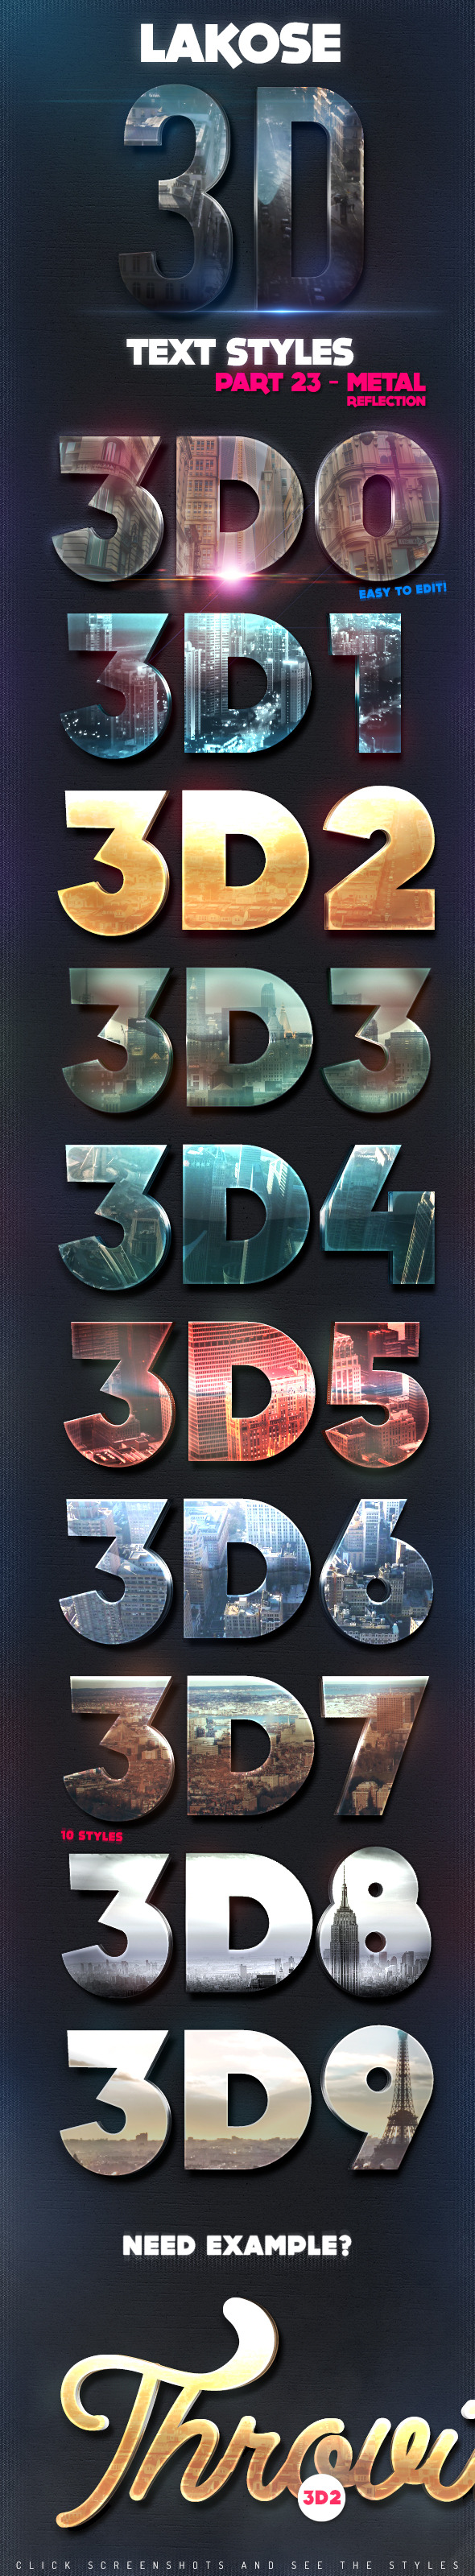 GraphicRiver Lakose 3D Text Styles Part 23 10593670